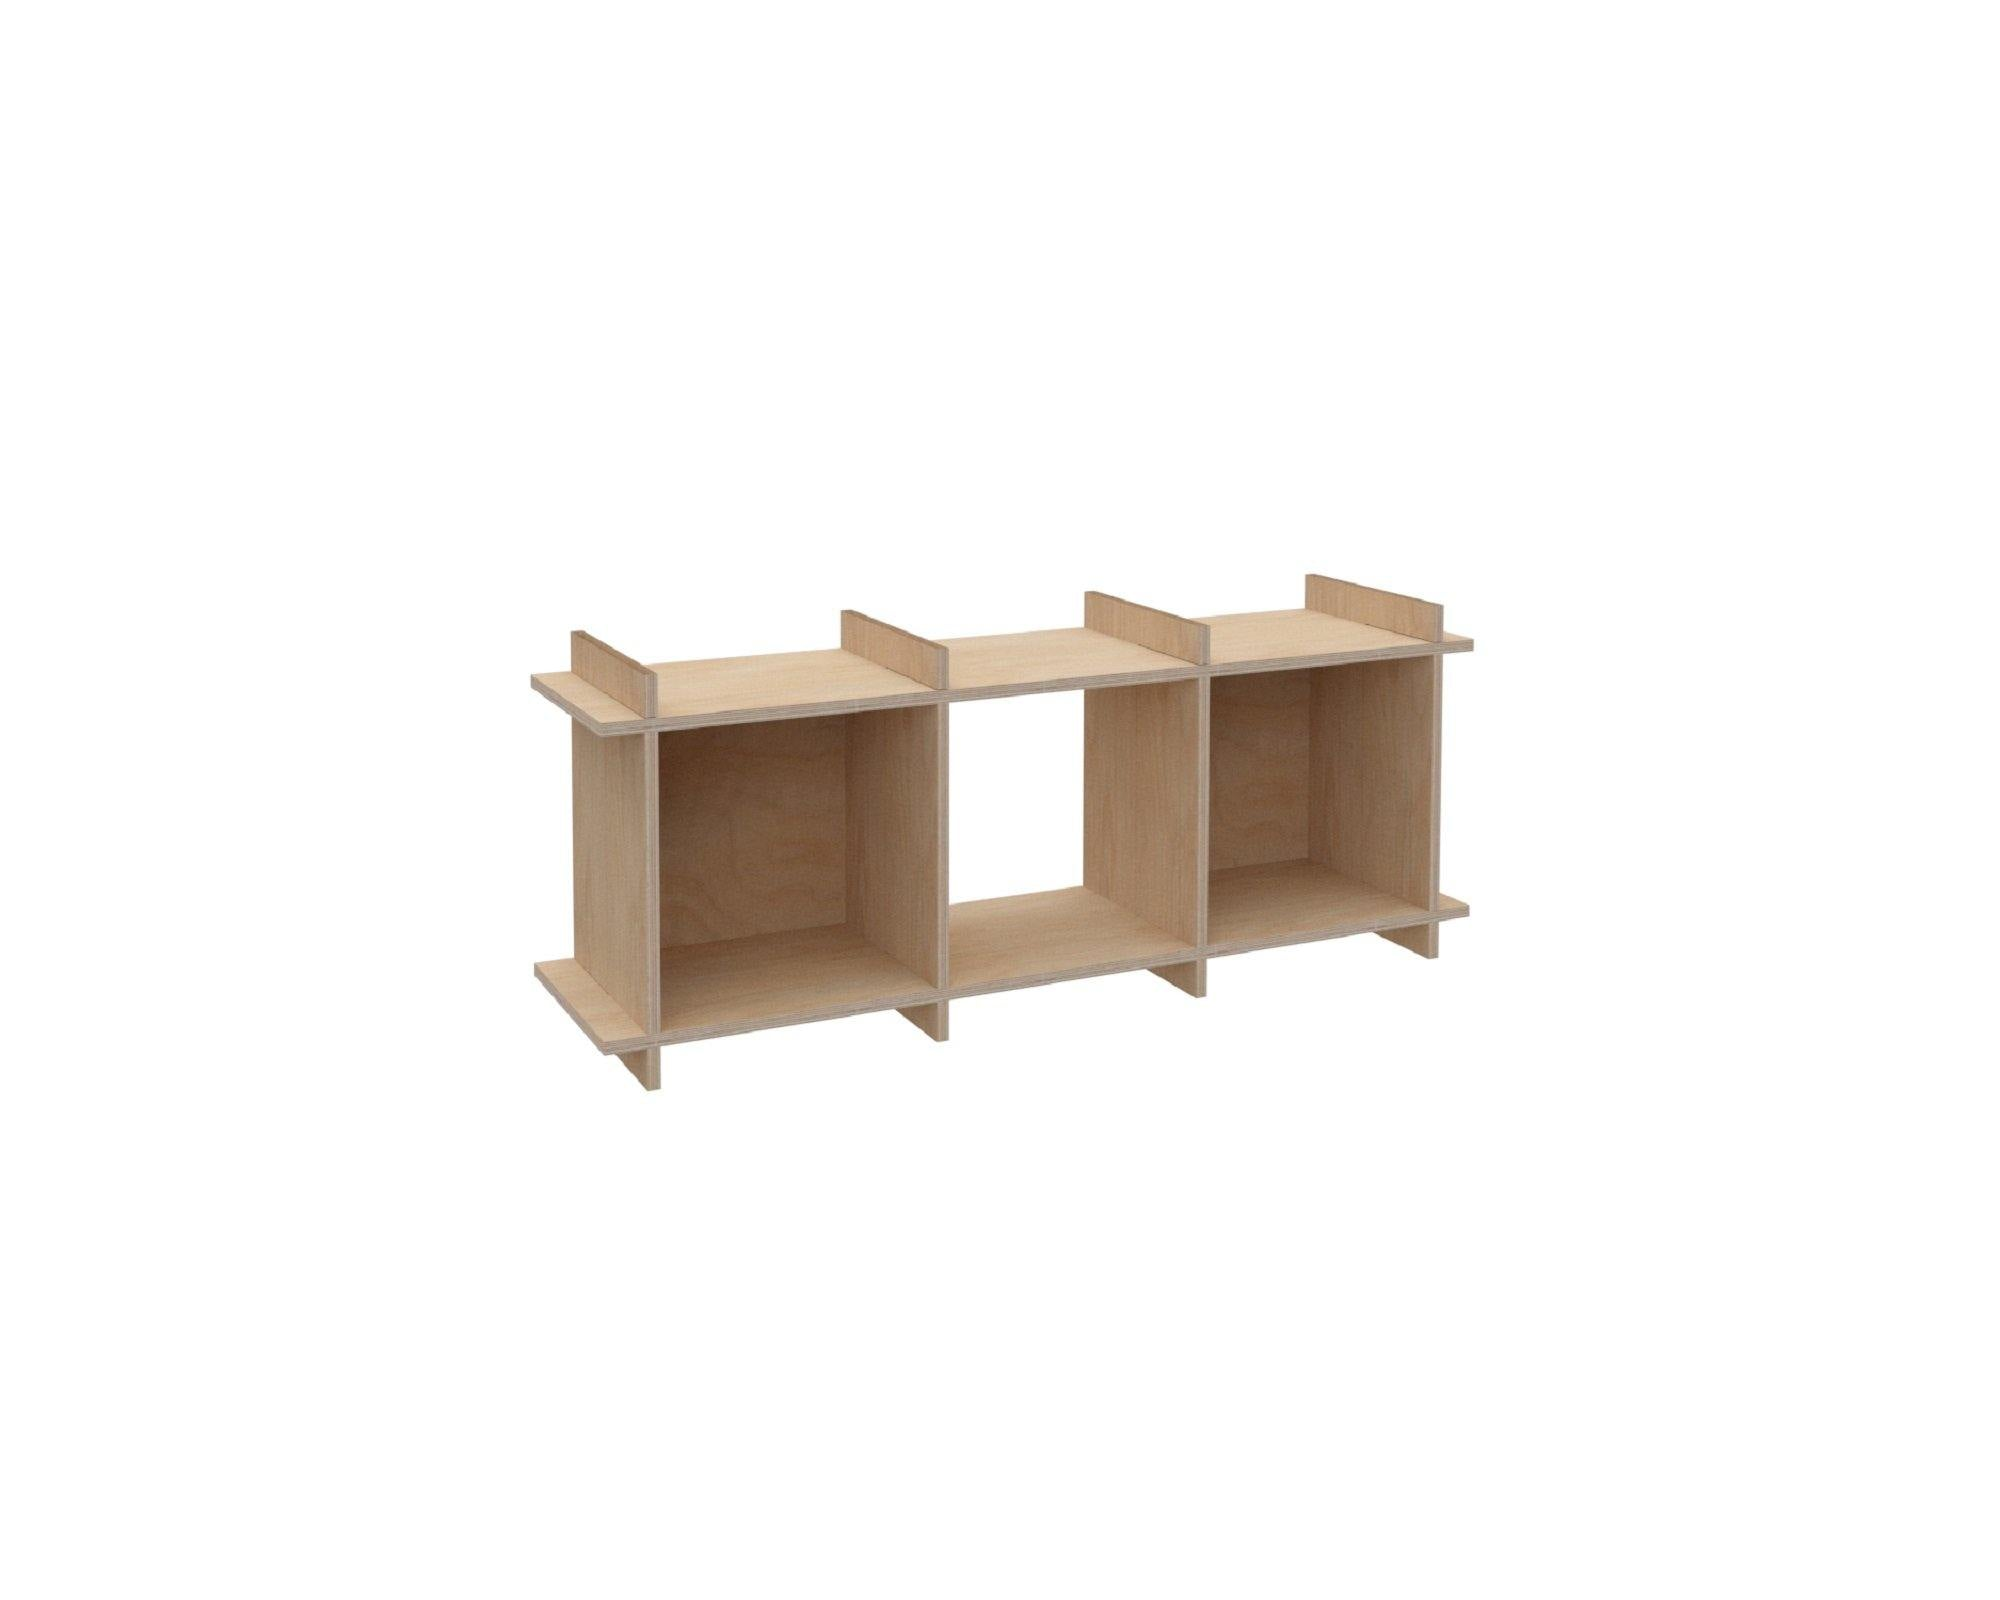 "Plywood Record Box Bookshelf	-	1x3	33cm / 13"" Box	-	46x115x33cm	/	18""x45""x13"" - skleia.com - handmade ergonomic ecologic plywood furniture"